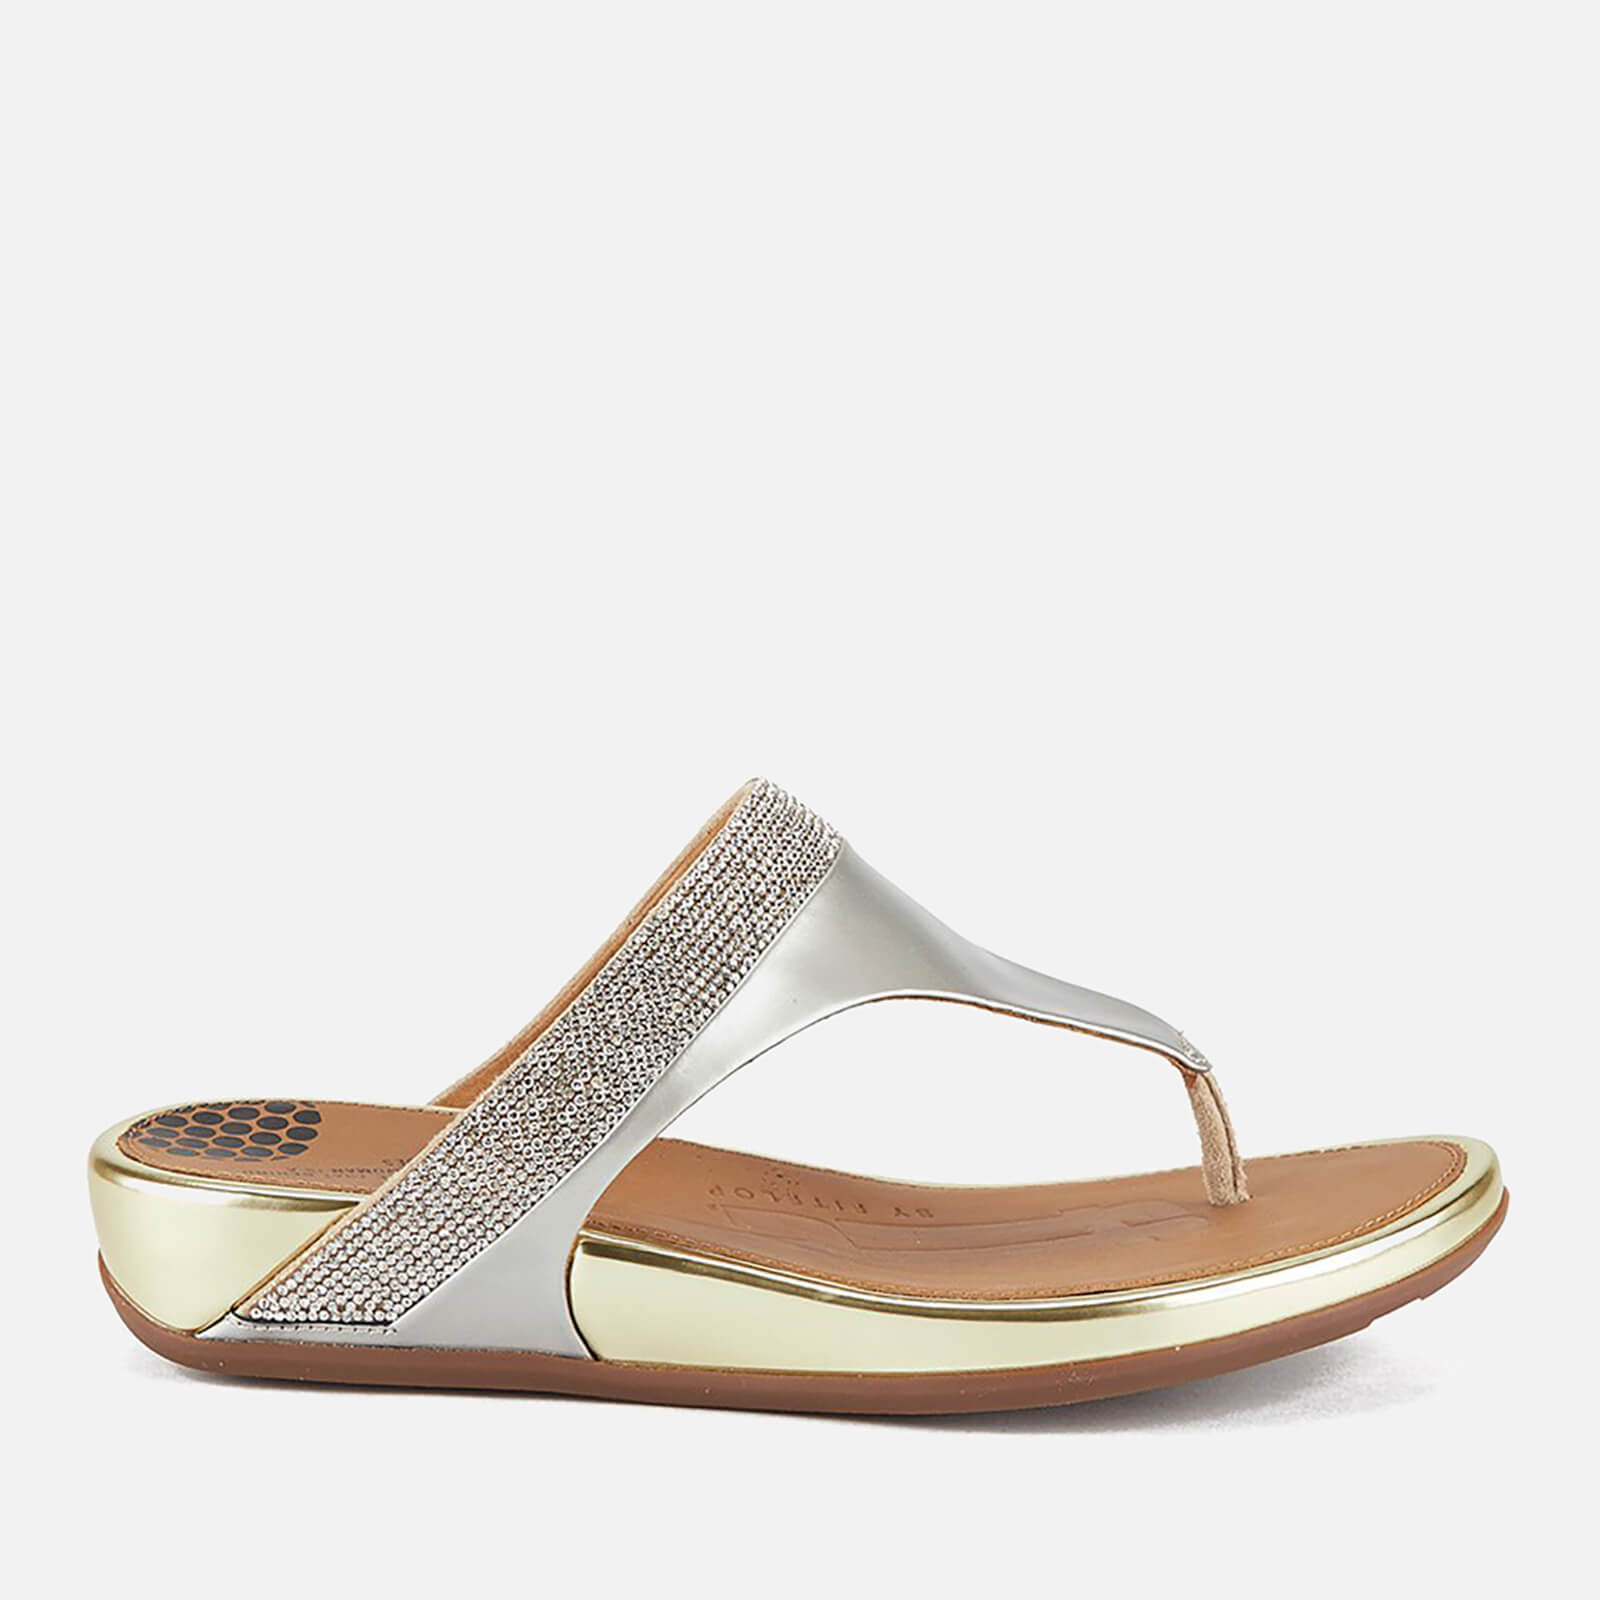 06492ed0e FitFlop Women s Banda Micro-Crystal Leather Toe Post Sandals - Pale Gold  Womens Footwear